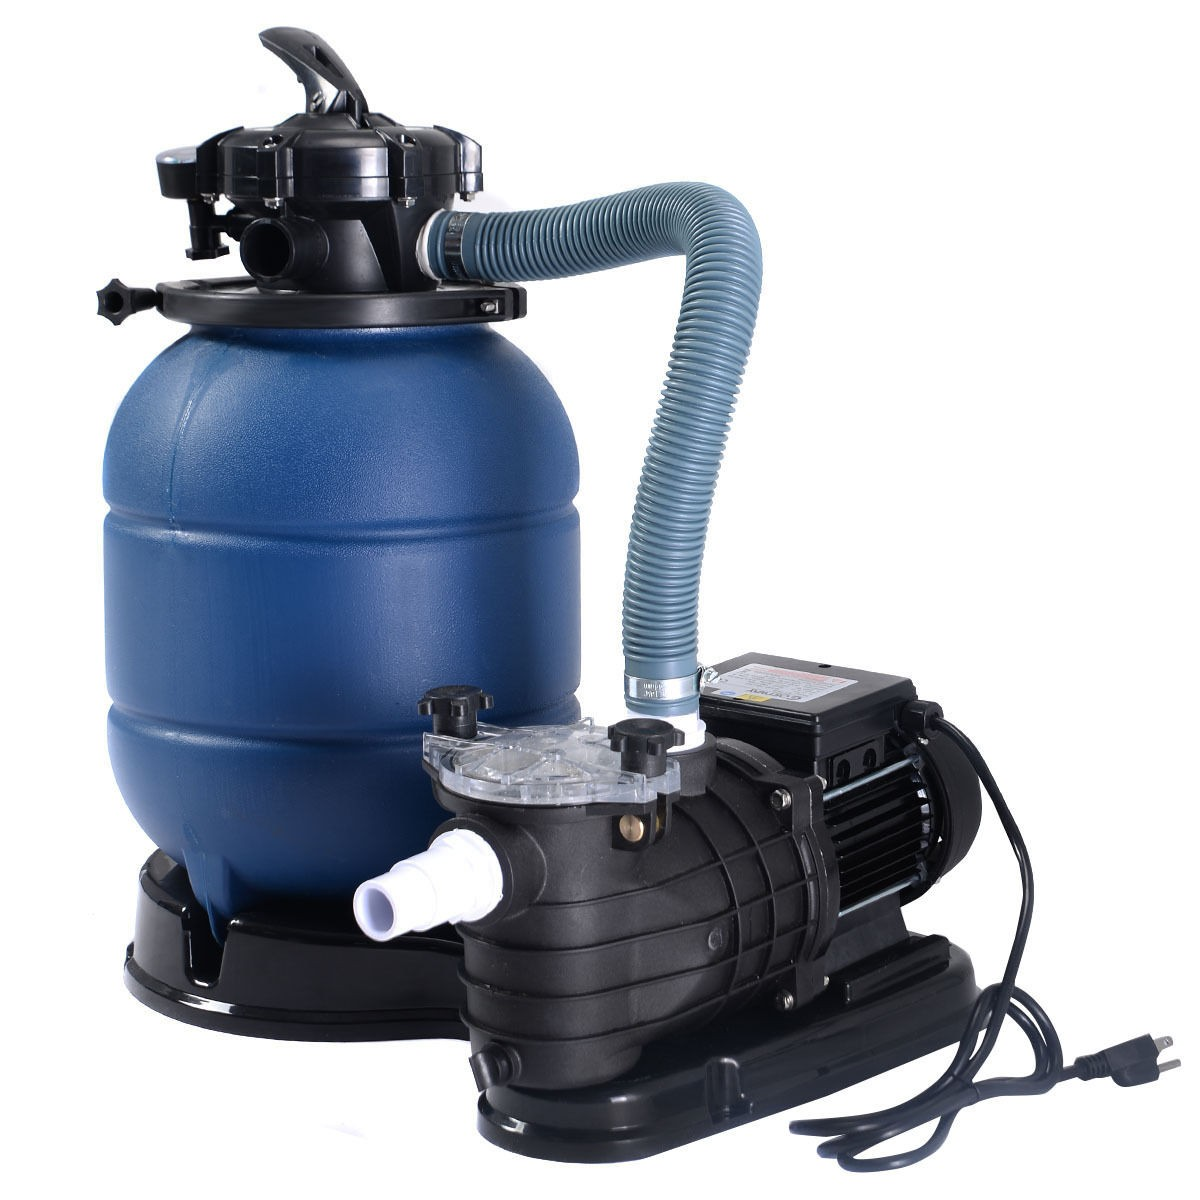 pro 2450gph 13 sand filter above ground 10000gal swimming pool pump us new ebay. Black Bedroom Furniture Sets. Home Design Ideas